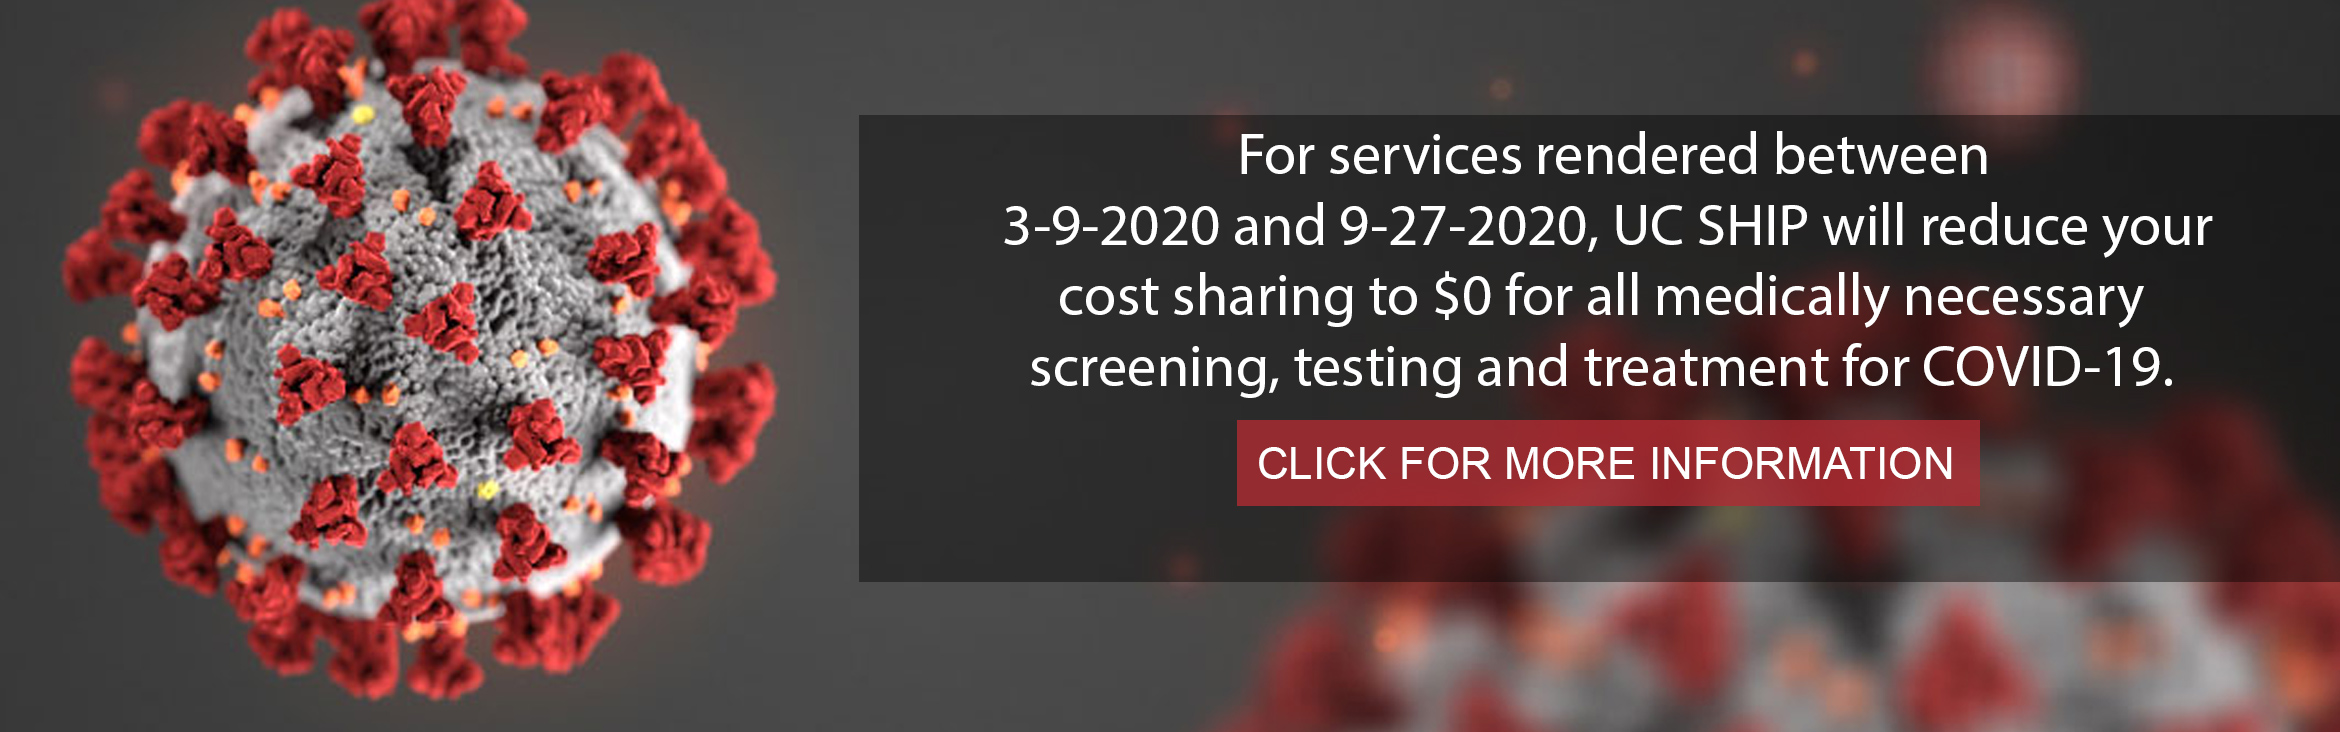 For services rendered between 3-9-2020 and 9-27-2020, UC SHIP will reduce your  cost sharing to $0 for all medically necessary  screening, testing and treatment for COVID-19.  Click for more information